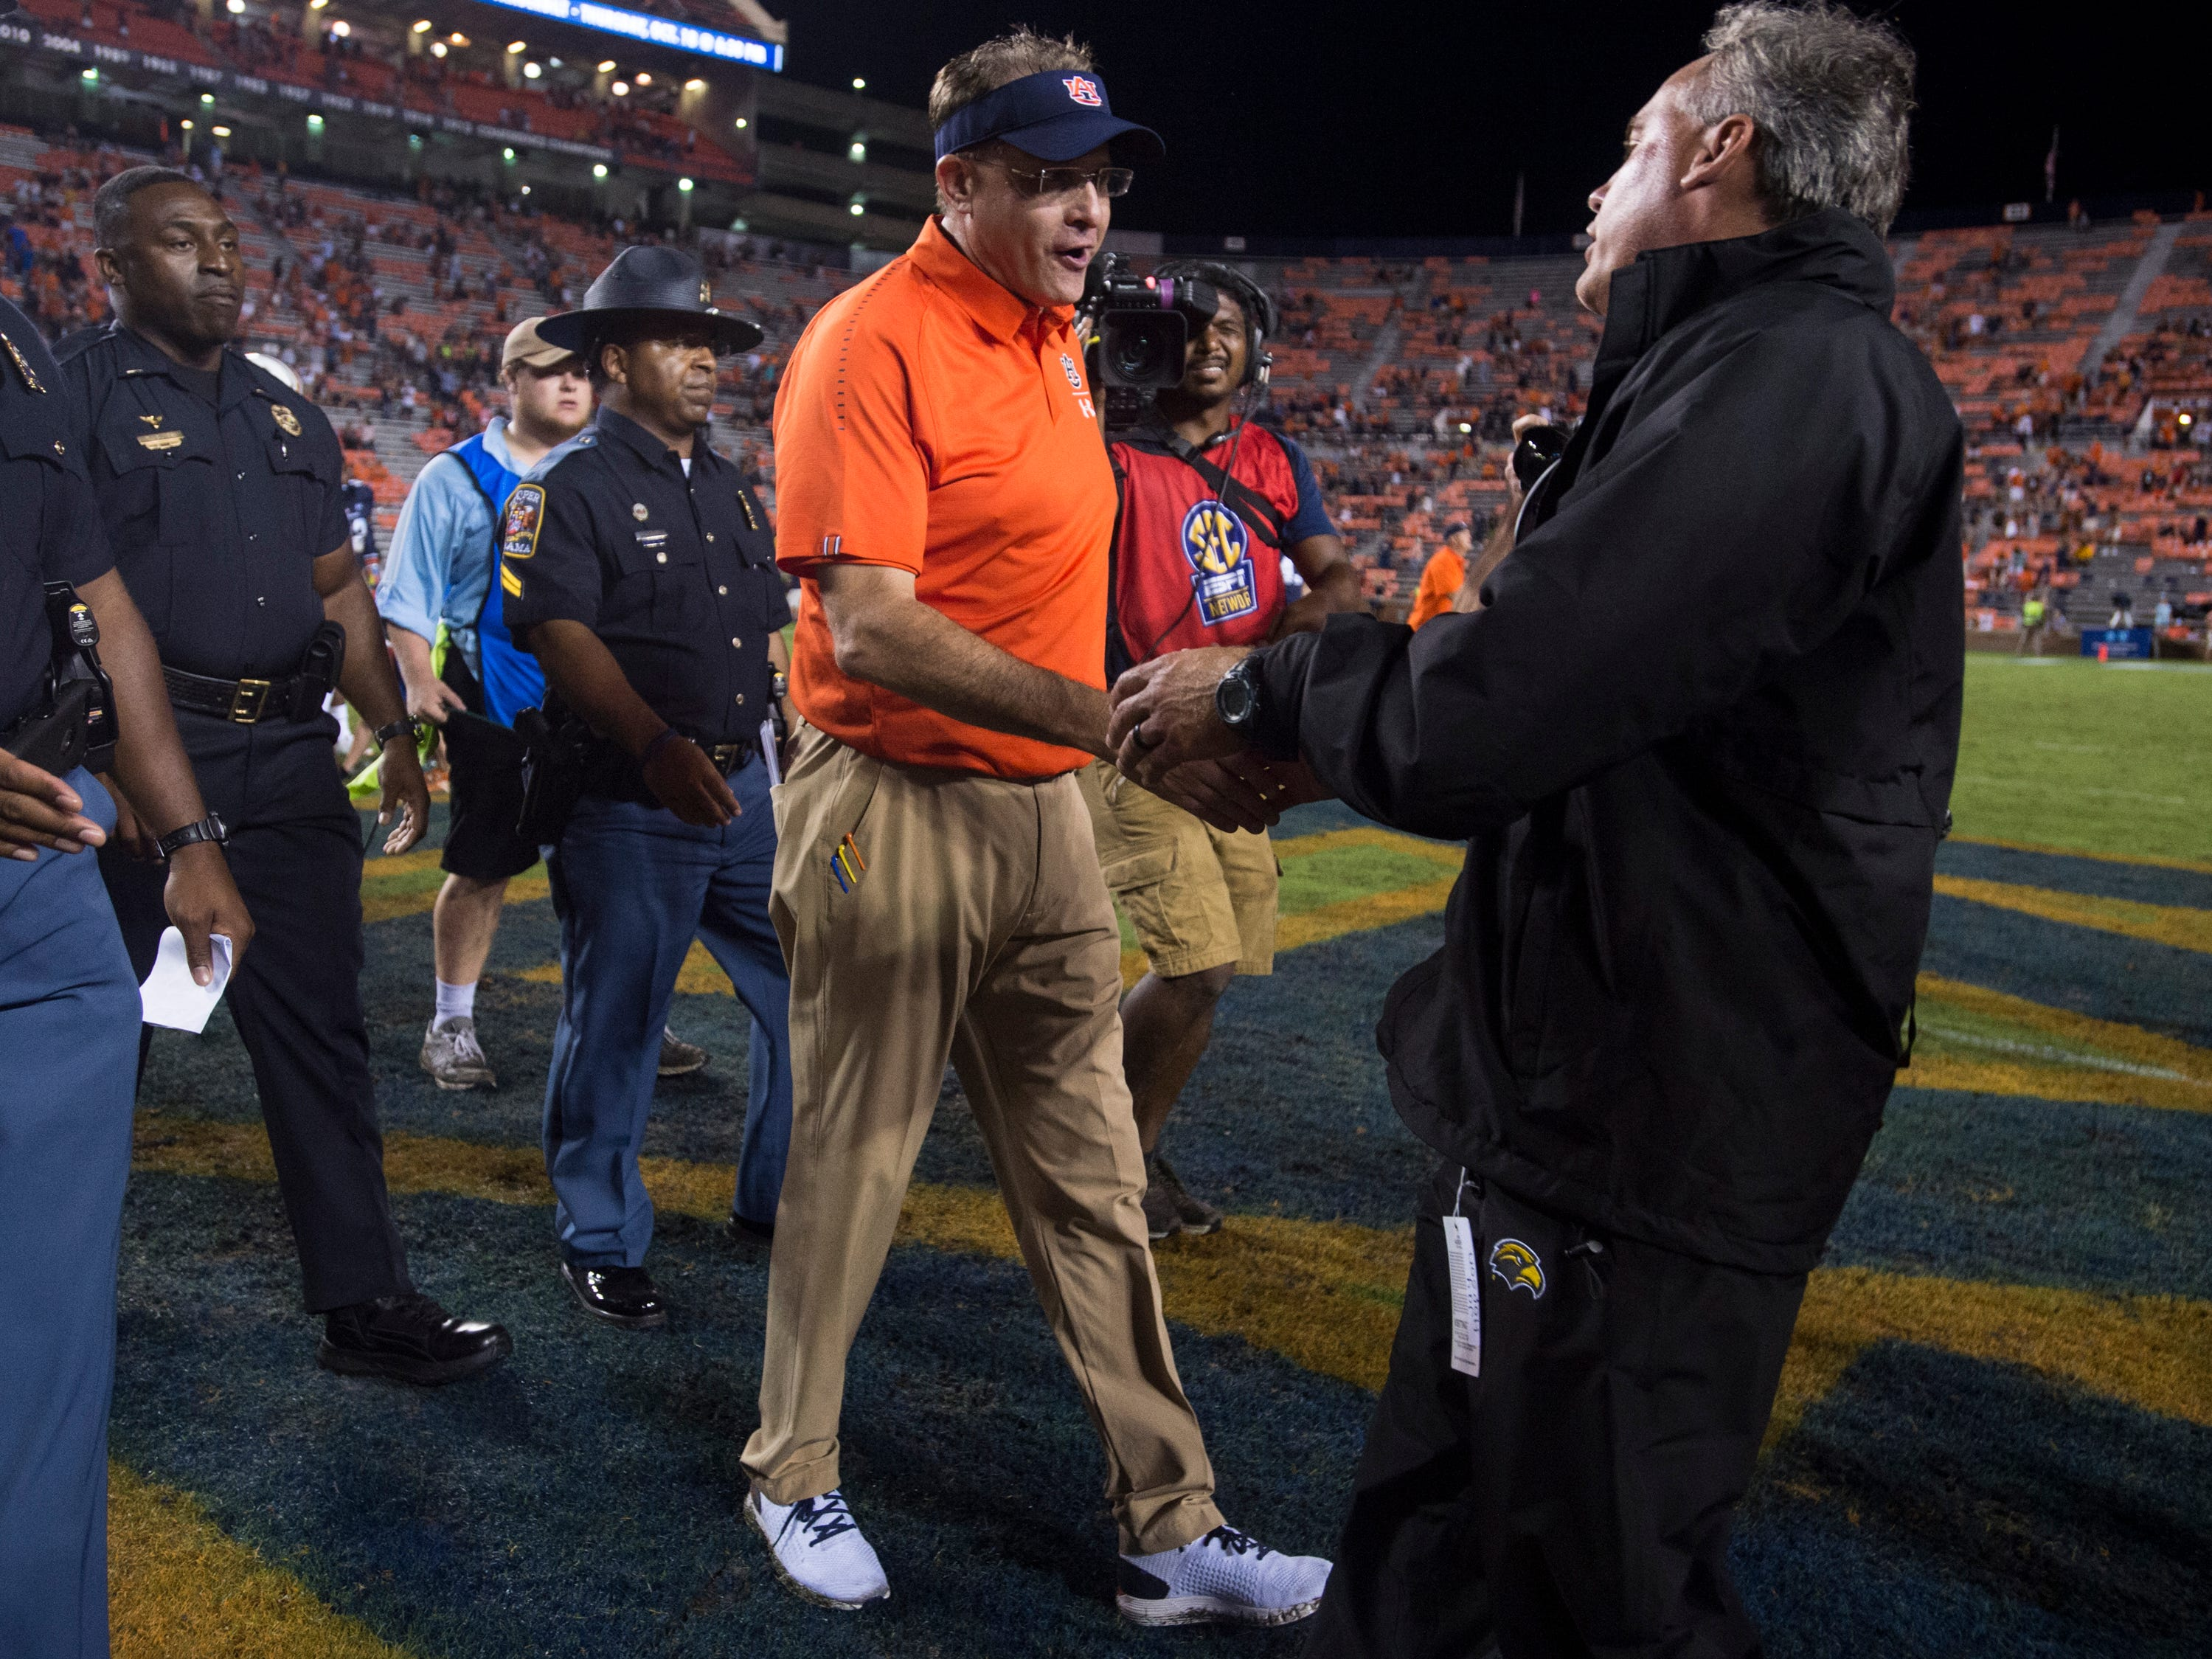 Auburn head coach Gus Malzahn shakes hands with Southern Miss head coach Jay Hopson following the game at Jordan-Hare Stadium in Auburn, Ala., on Saturday, Sept. 29, 2018. Auburn defeated  Southern Miss 24-13.